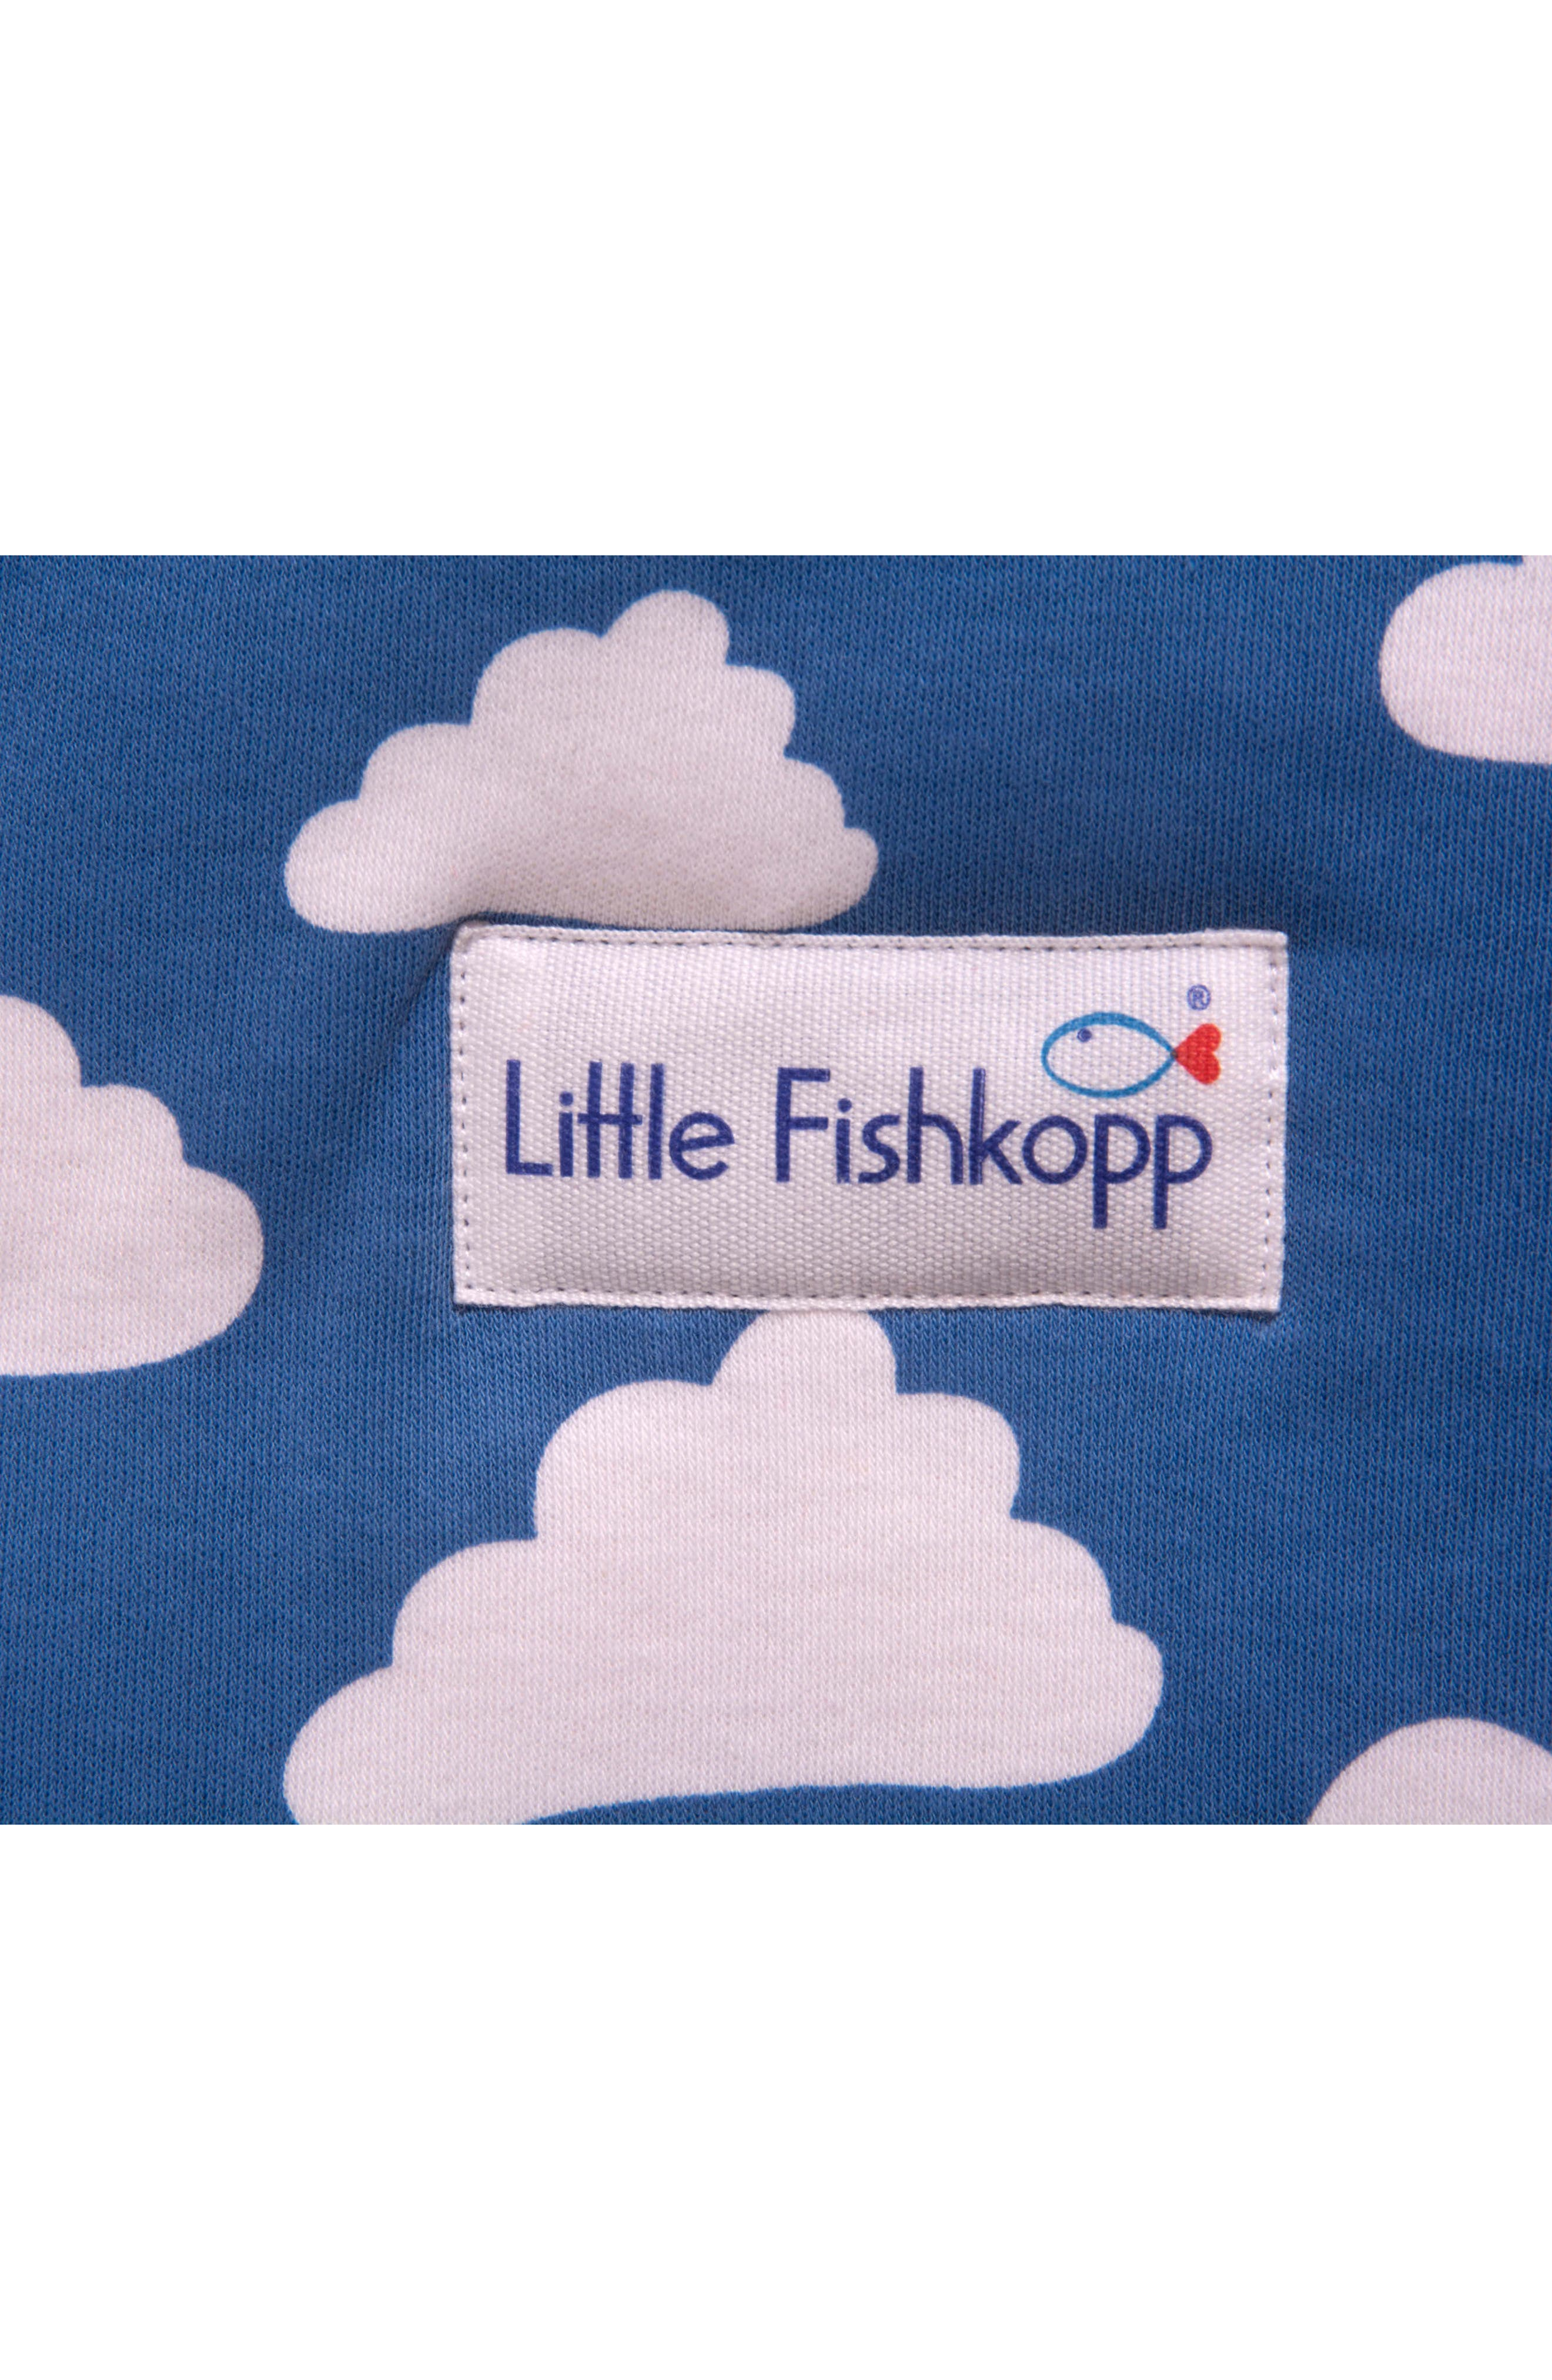 Clouds Organic Cotton Wearable Blanket,                             Alternate thumbnail 2, color,                             400